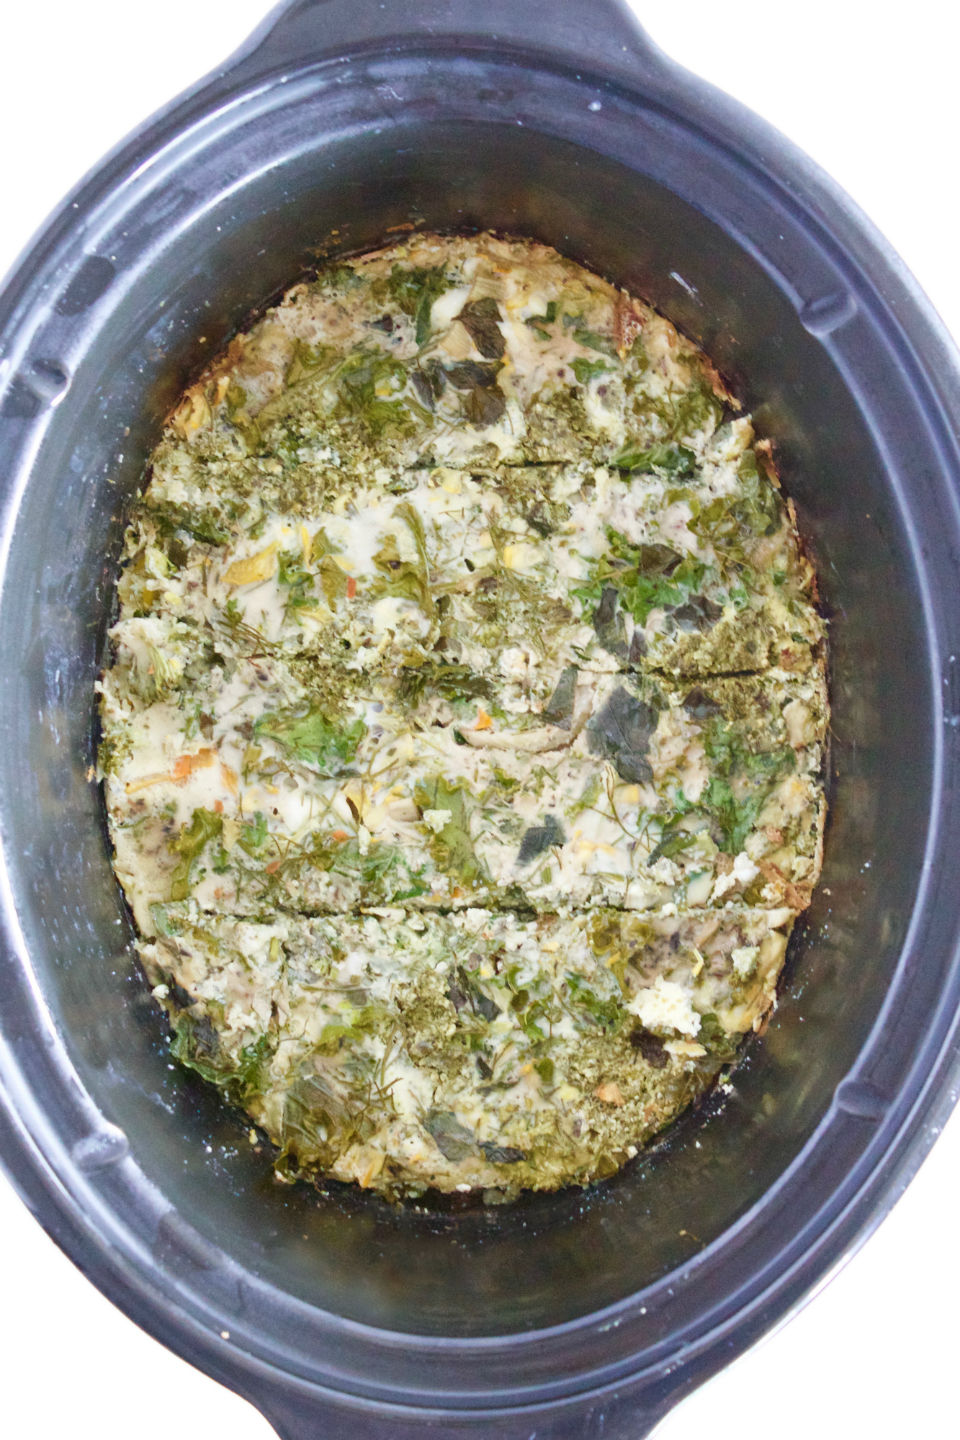 Slow Cooker Pesto Vegetable Frittata Recipe -- A super easy and healthy meal that takes minutes to prepare. Make with whatever veggies you have on hand! Perfect for breakfast, brunch, or even dinner! | @sinfulnutrition | vegetarian | gluten-free